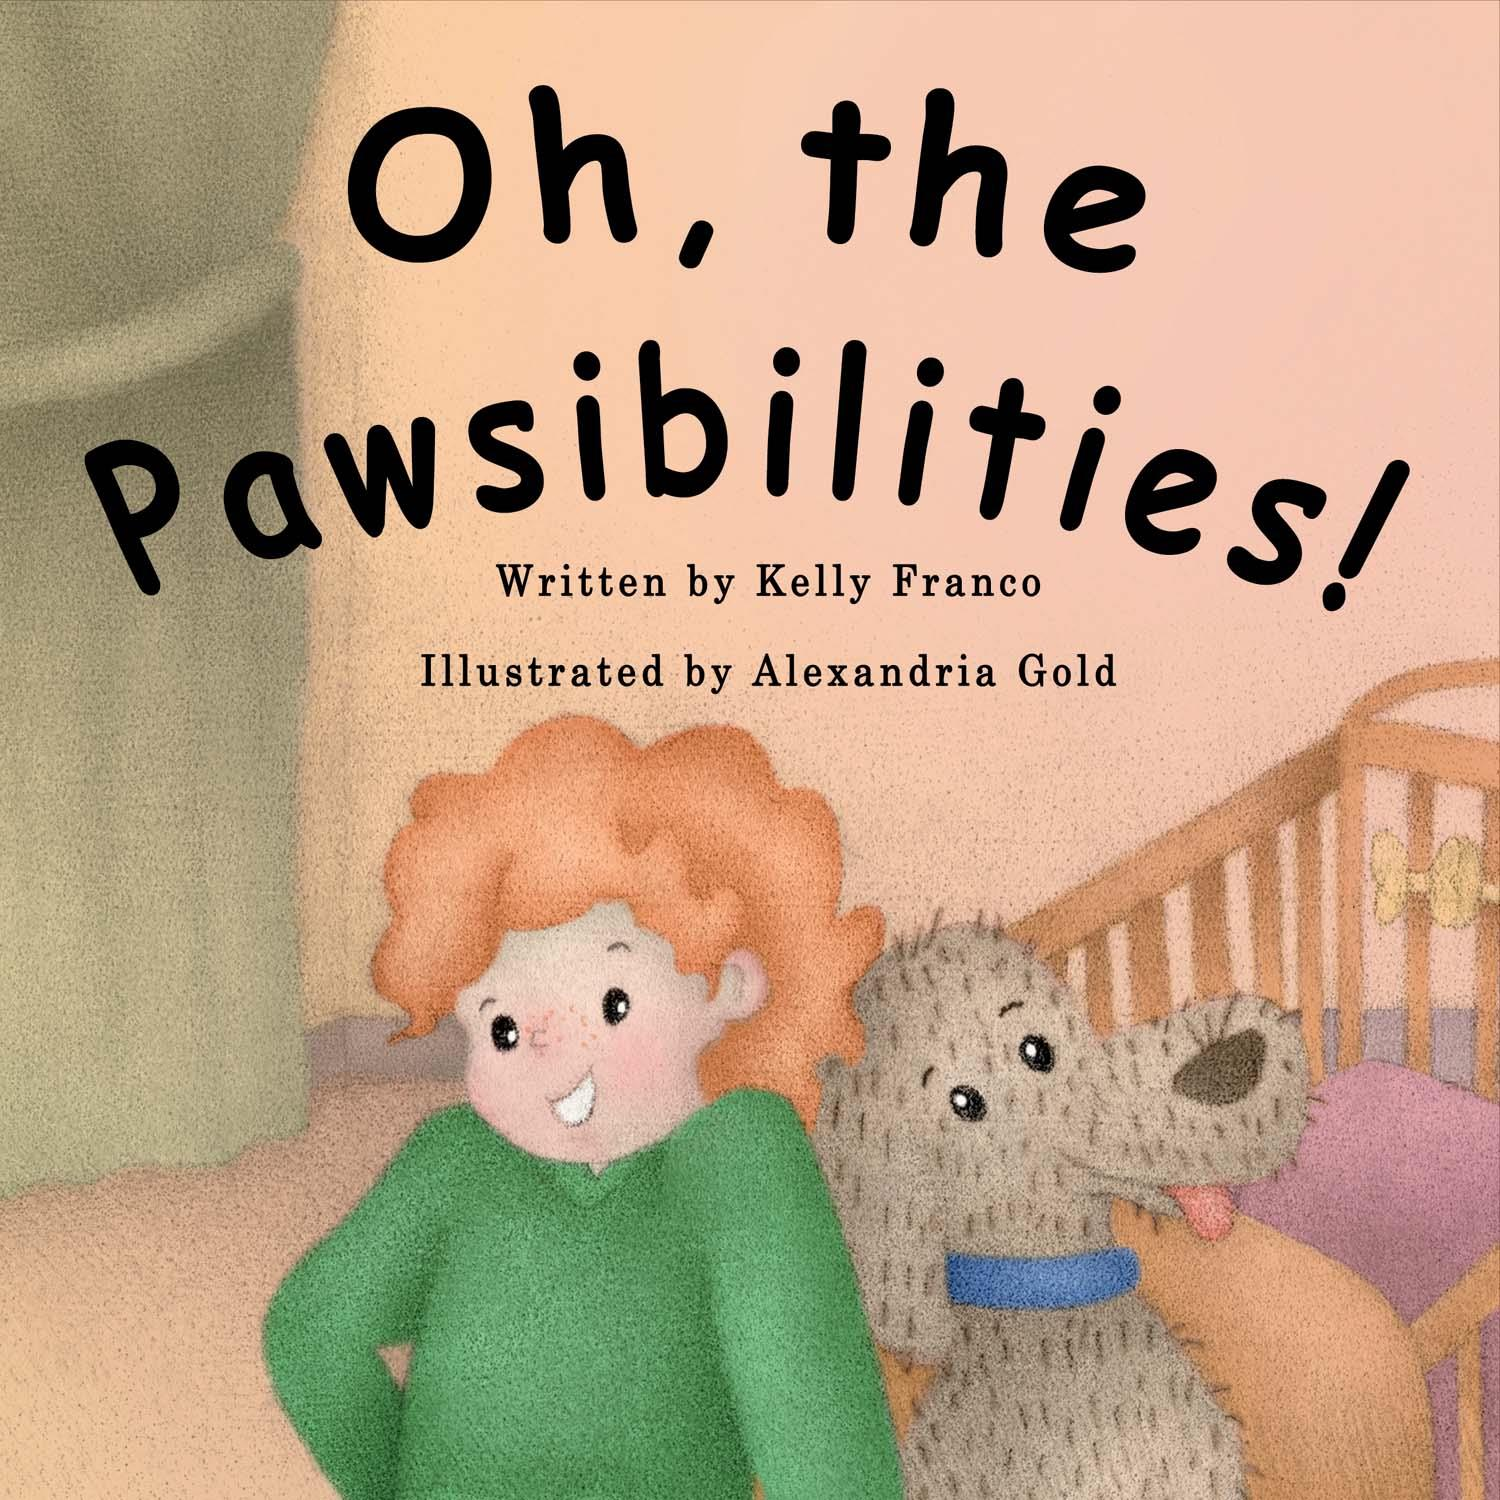 Oh, the Pawsibilities! by Kelly Franco | BookShop